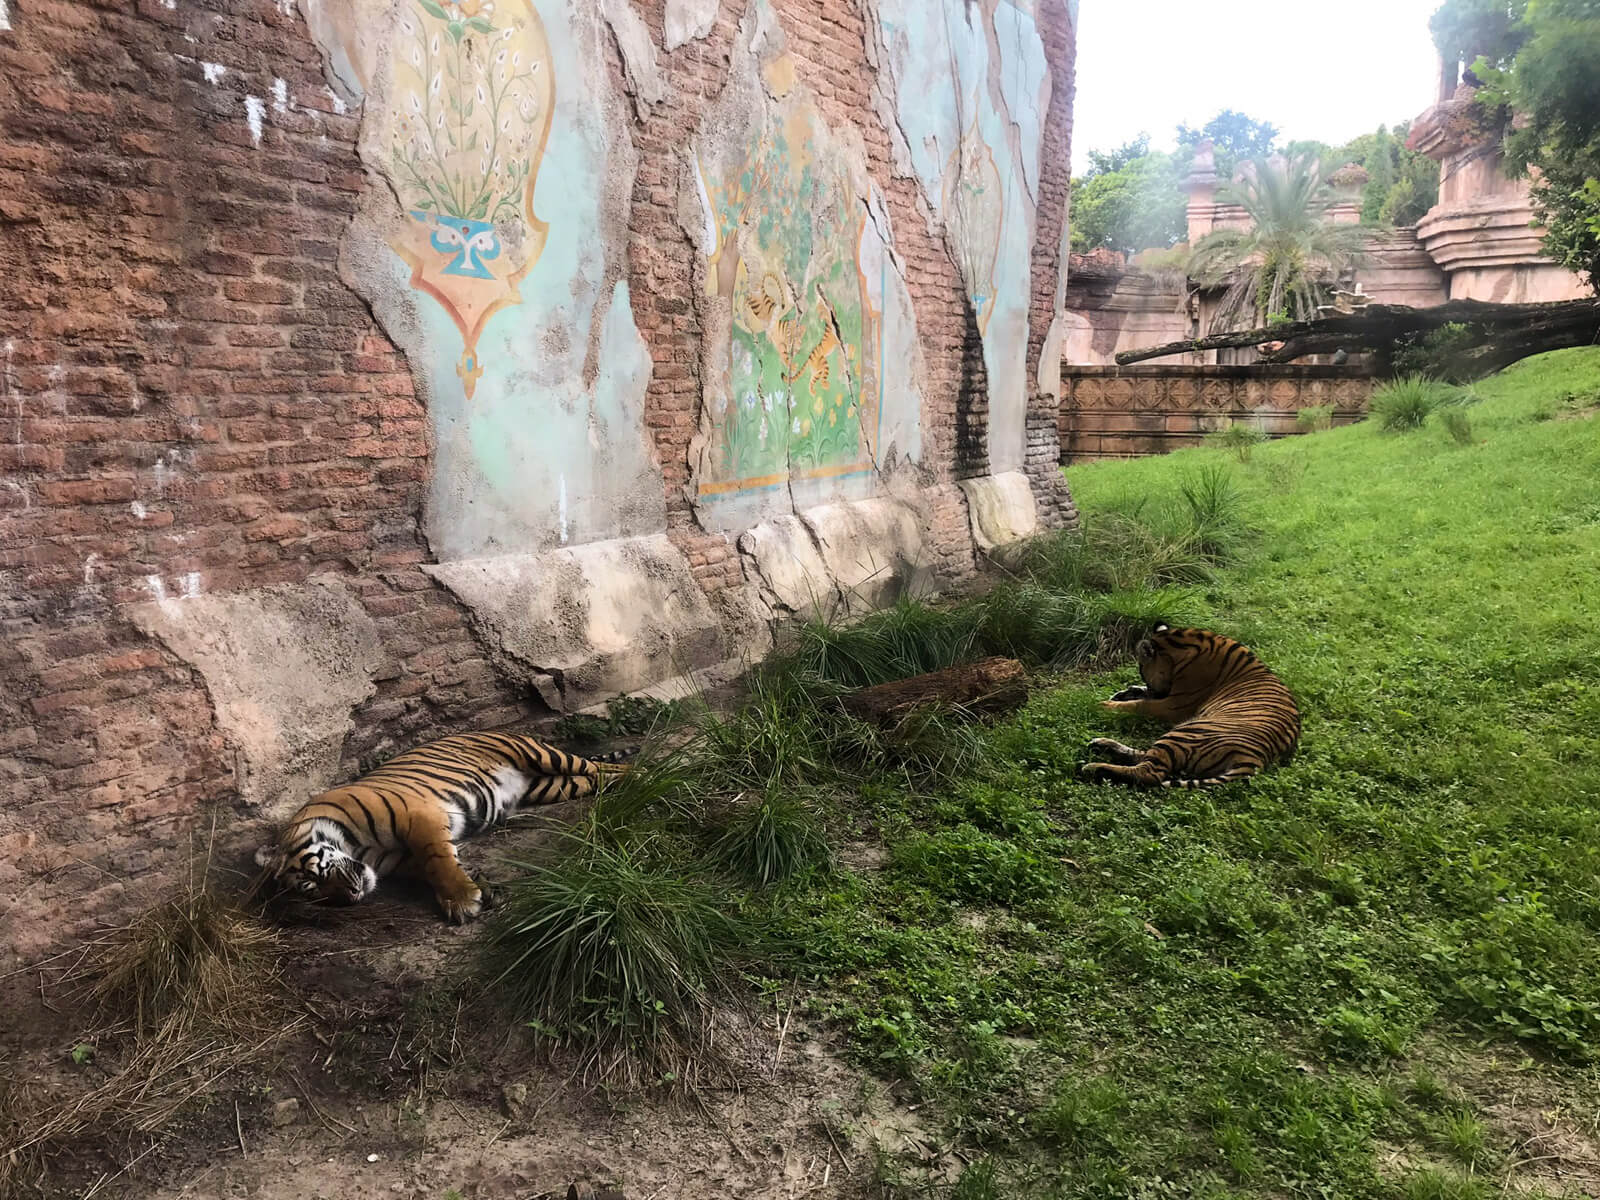 Two orange and black tigers lying lazily in some grass by a large brick wall